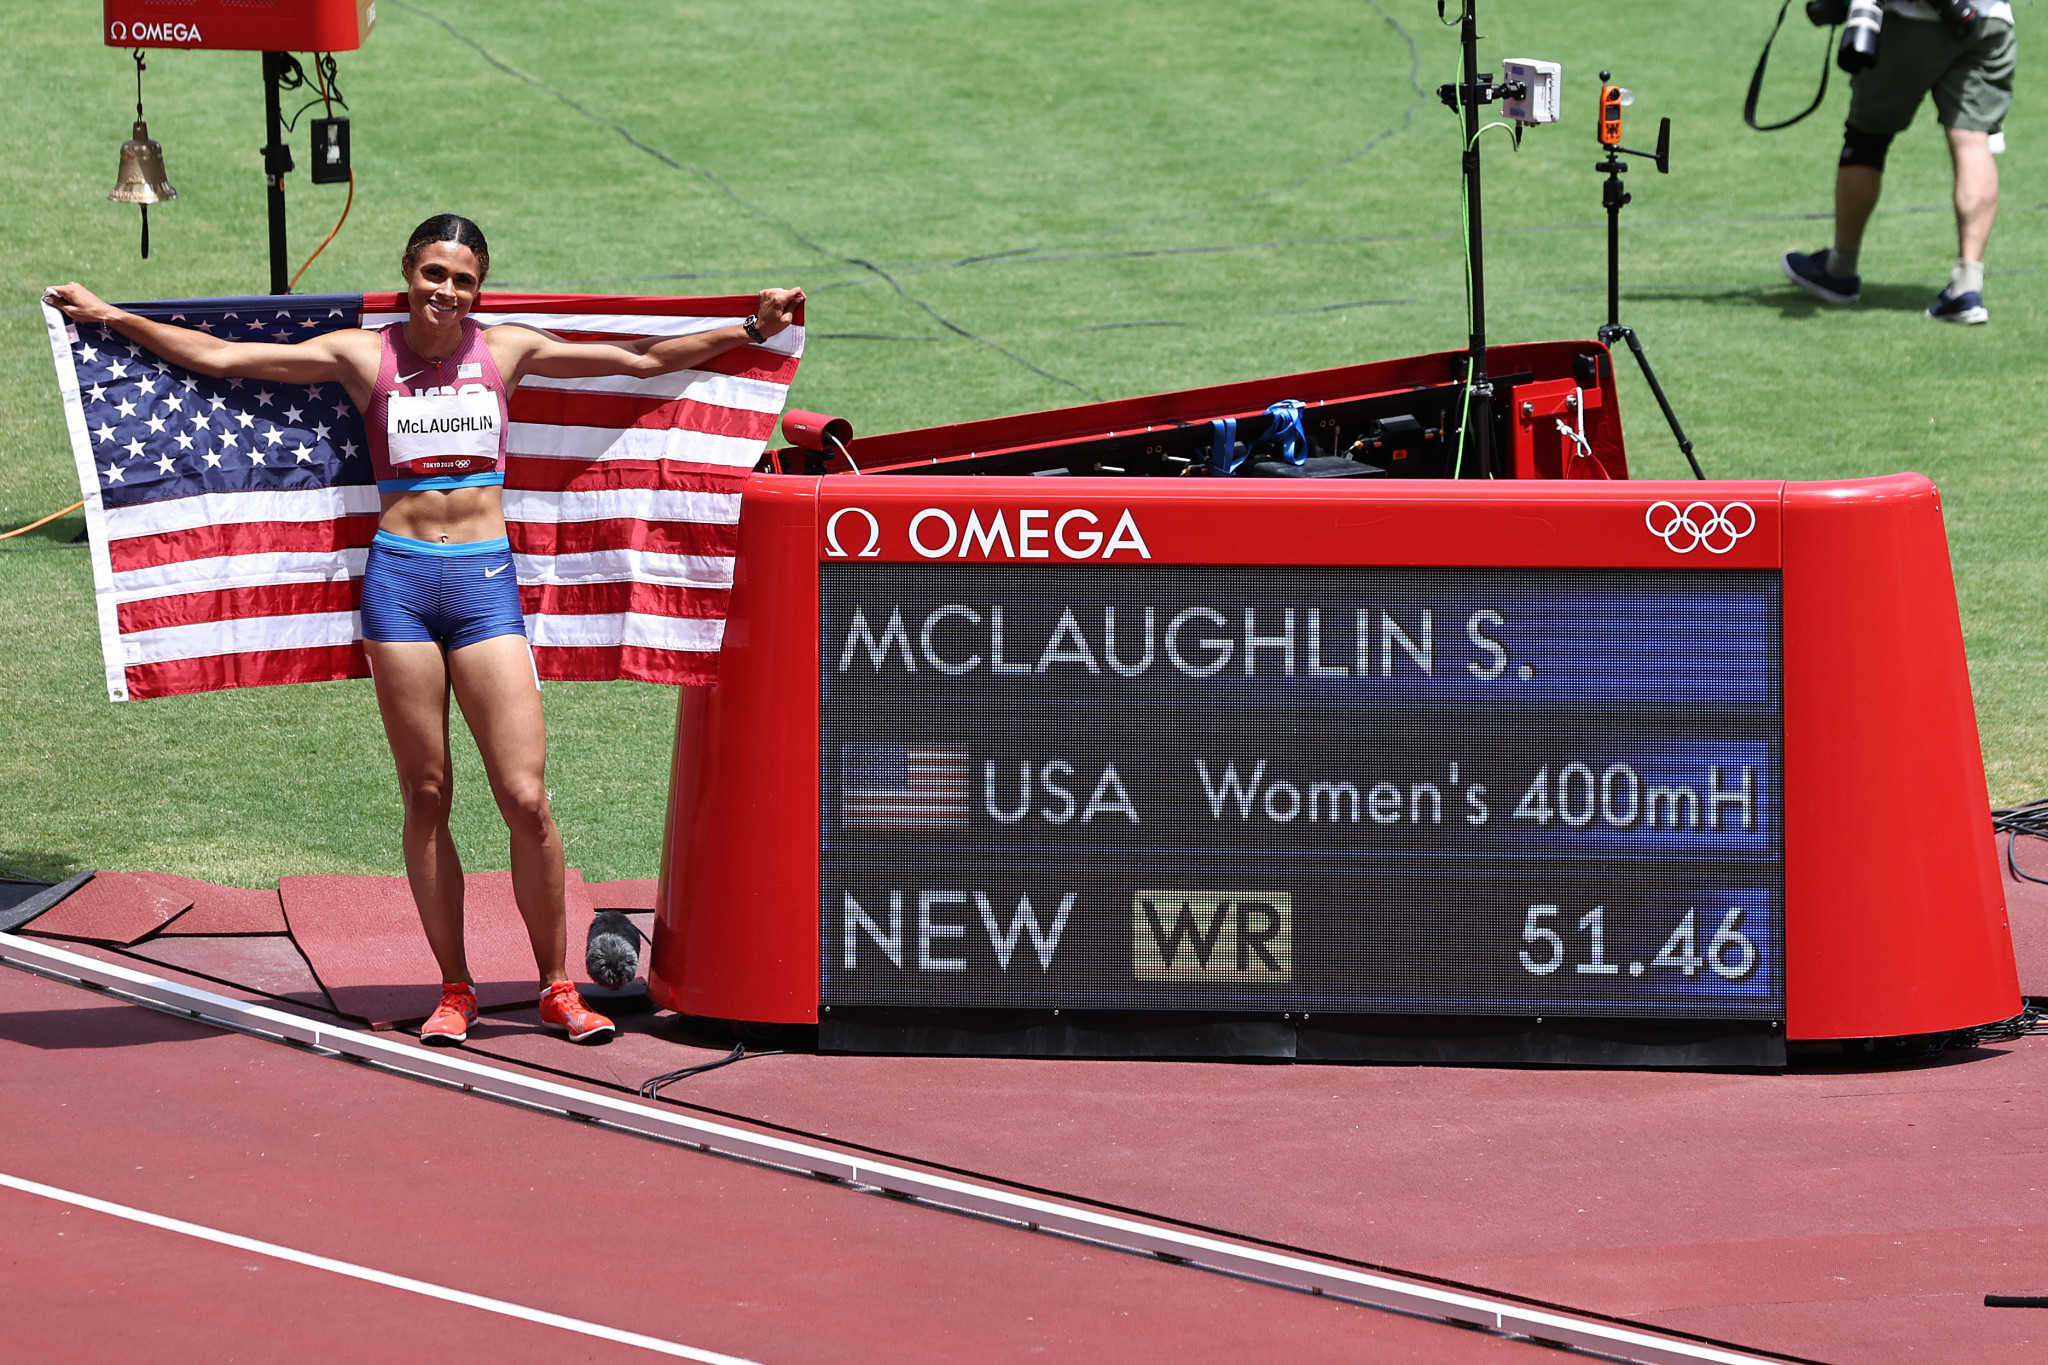 A 400m hurdles world record was smashed for the second day running at Tokyo 2020. American Sydney McLaughlin shaved 0.44sec off her own world record in a thrilling final ©Getty Images